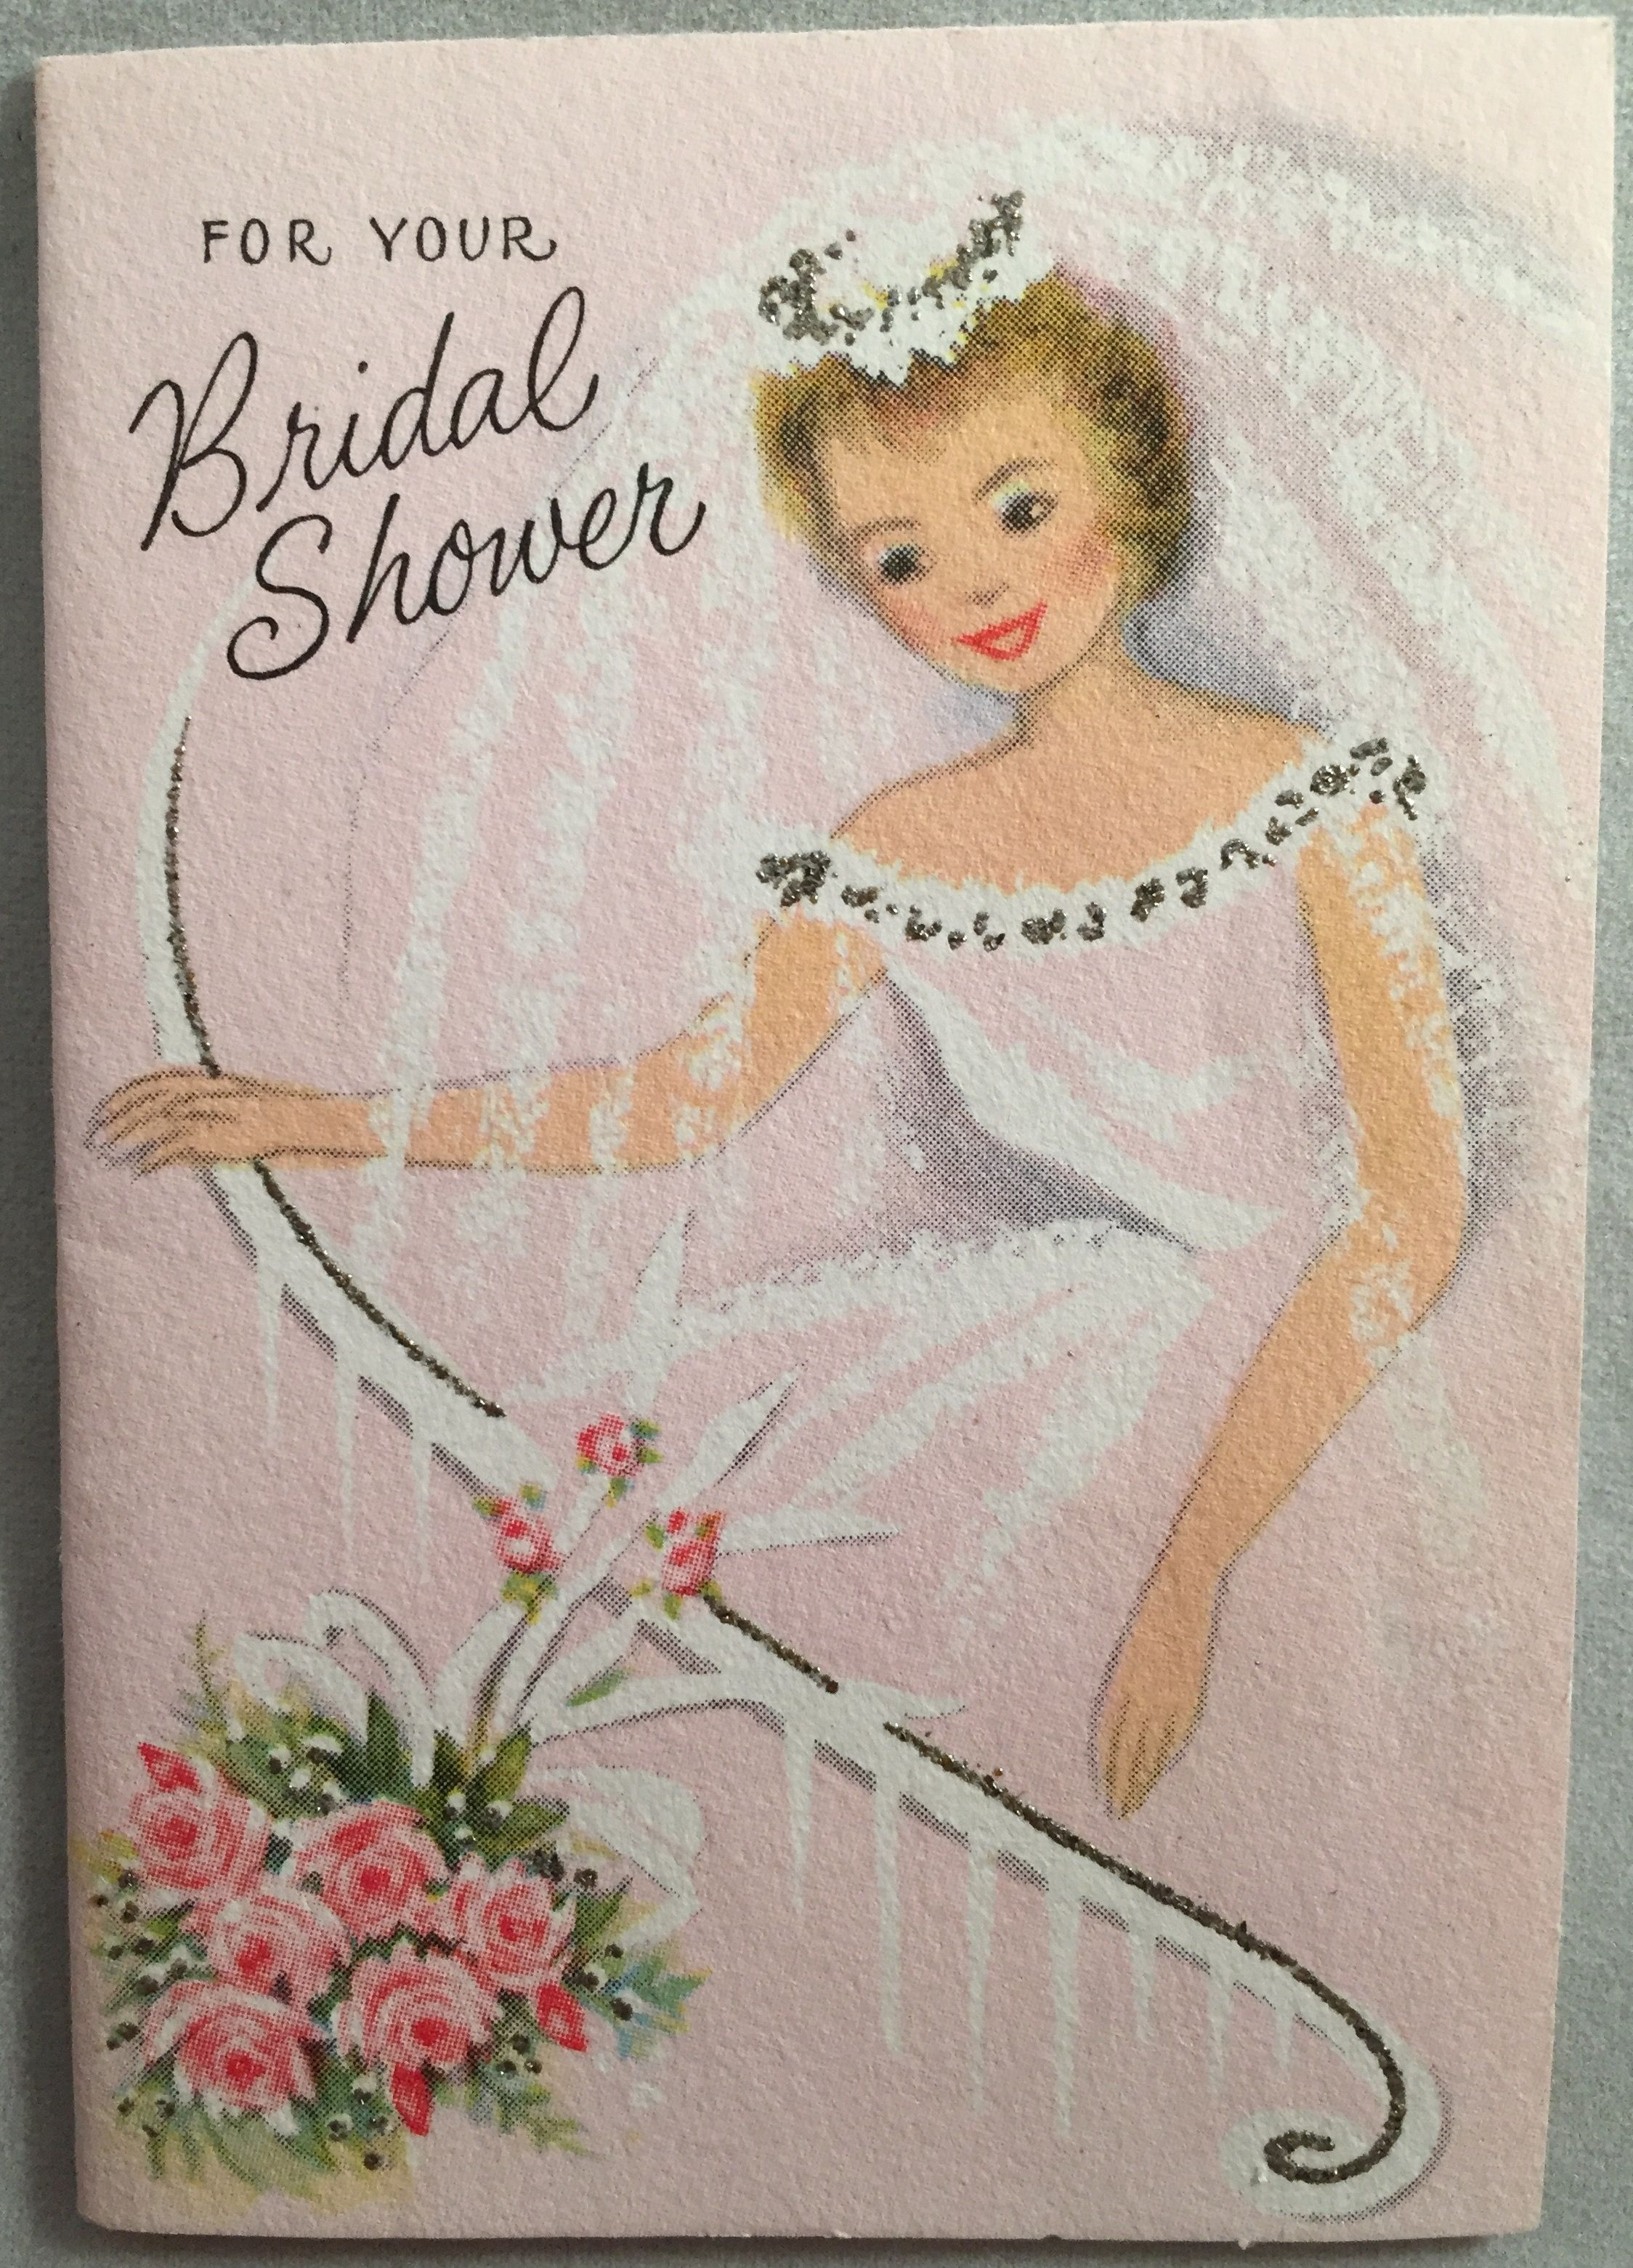 vintage bridal shower gift card 1940s50s